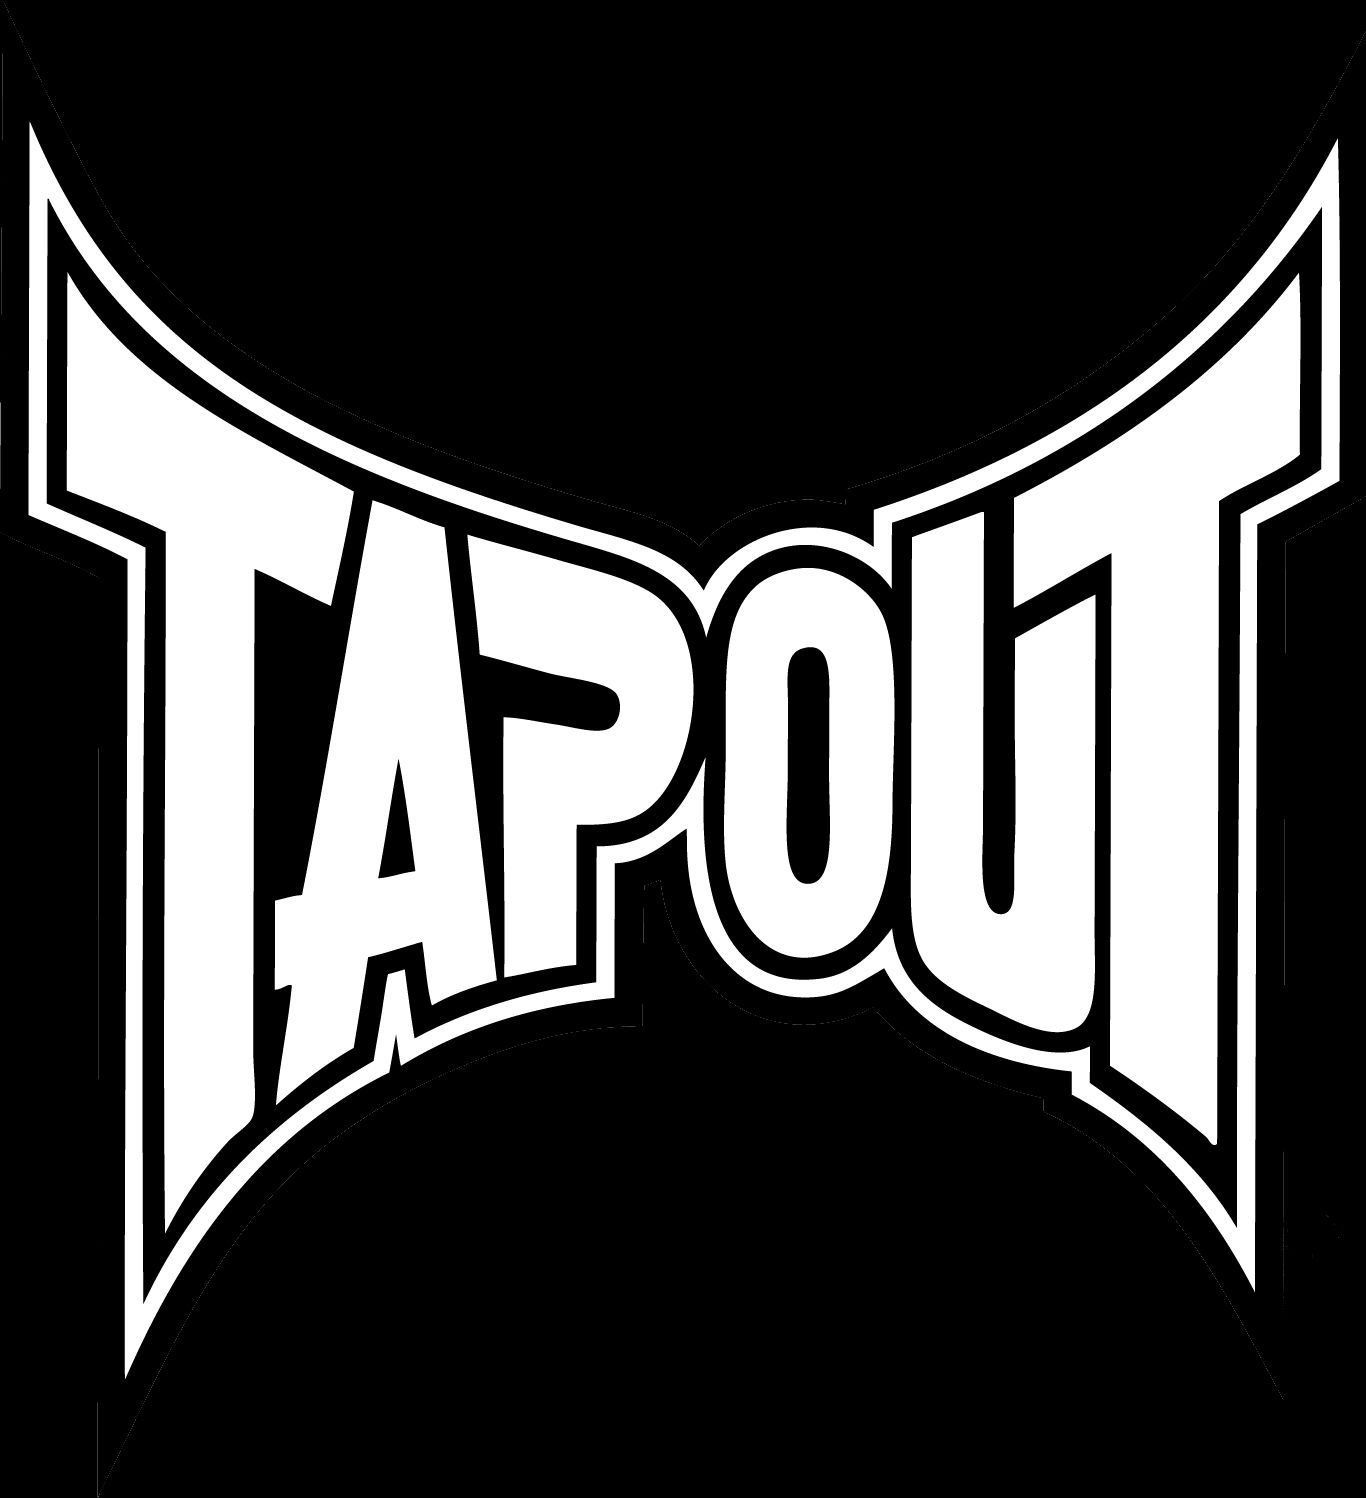 New Custom Screen Printed Tshirt Tapout By Screenprintedtshirts 16 00 Custom Screen Printing Screen Printing Screen Printed Tshirts [ 1498 x 1366 Pixel ]